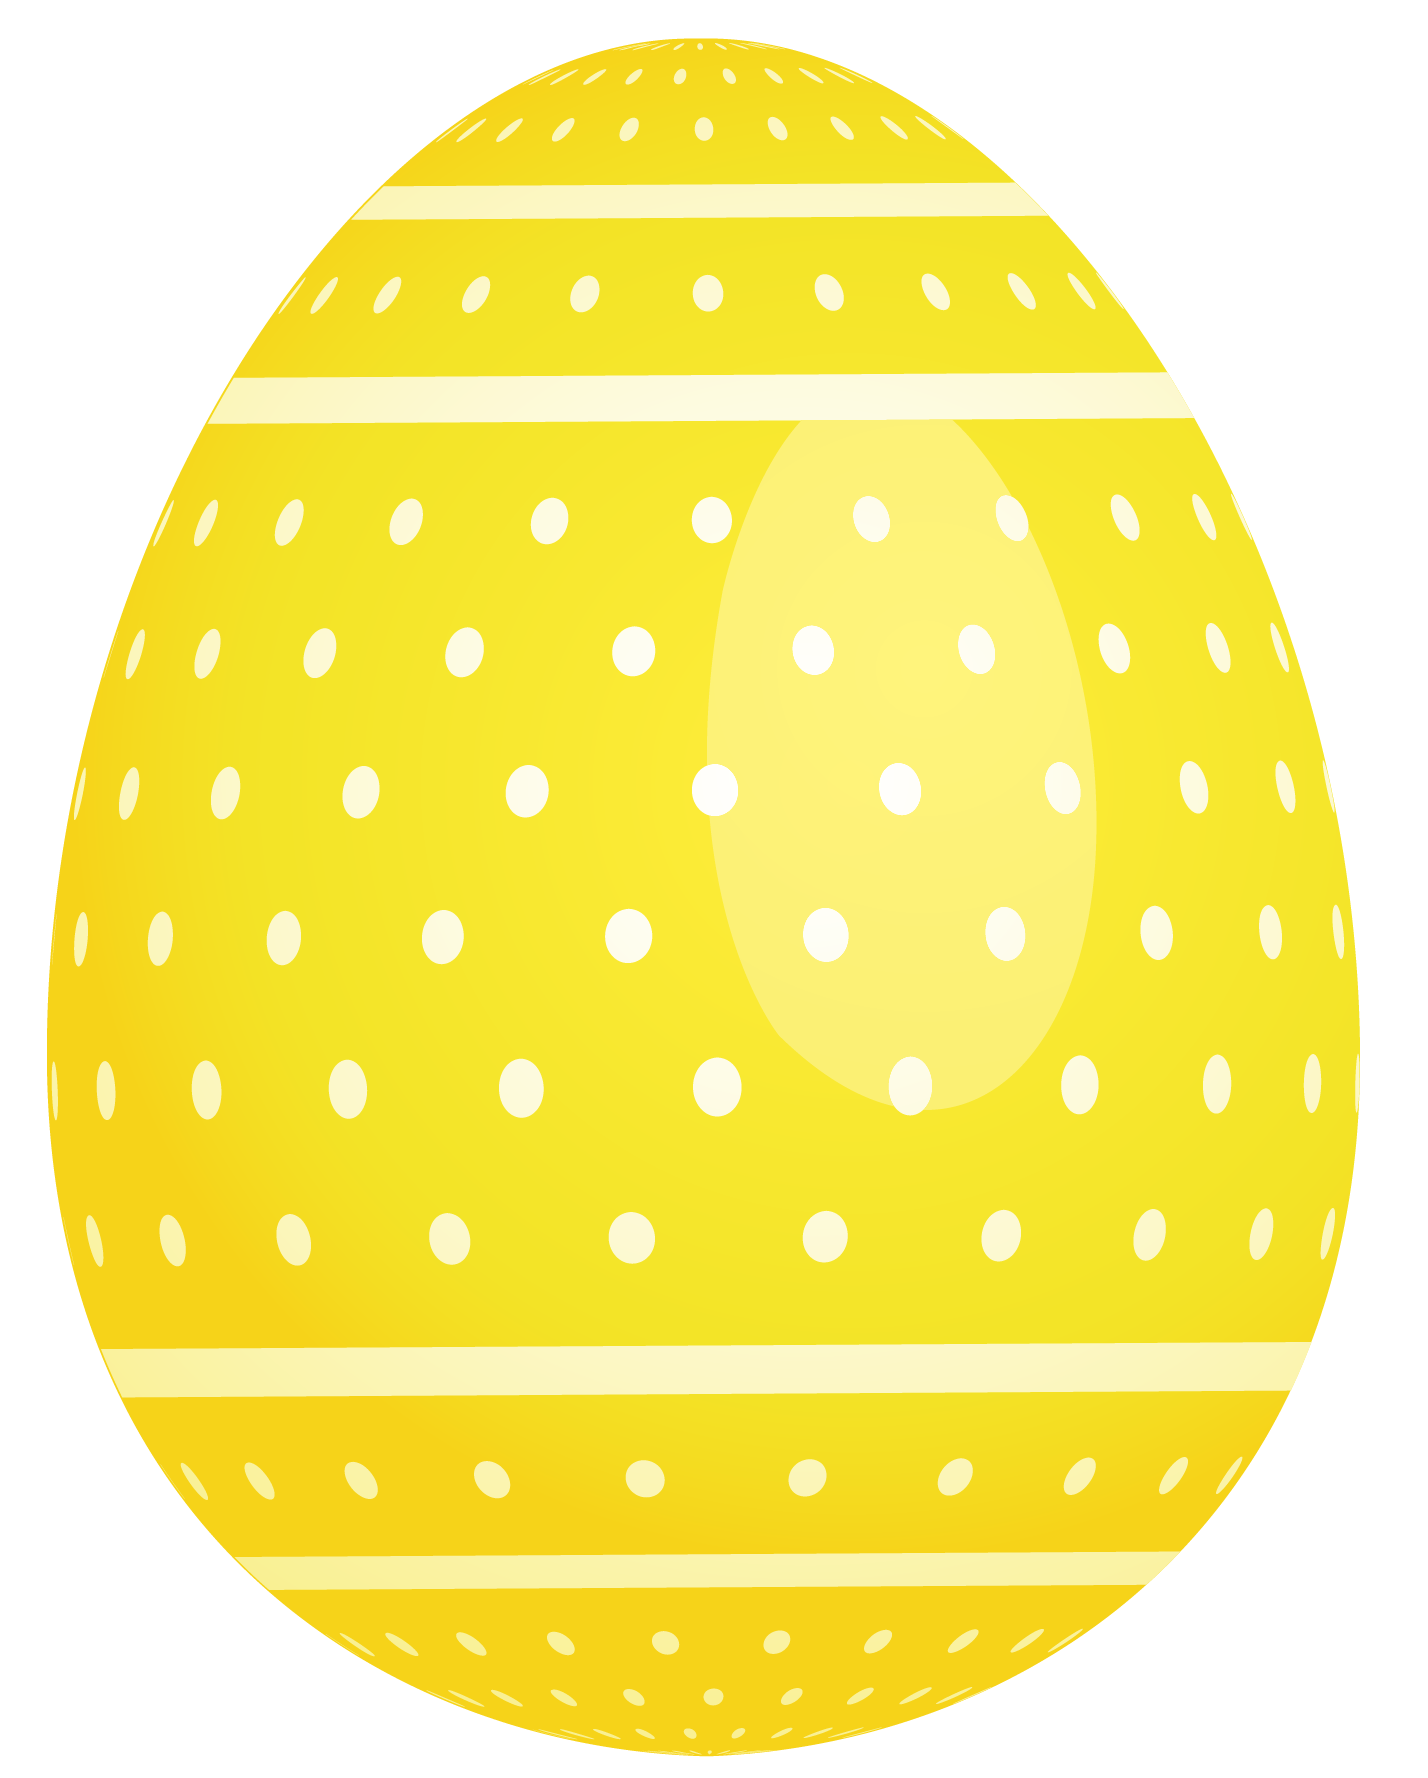 Easter egg yolk clipart clipart black and white download ✿⁀ Ɛɑʂtєr ‿✿⁀ | EᗩՏեᏋᖇ եᎥᗰᏋ | Pinterest clipart black and white download